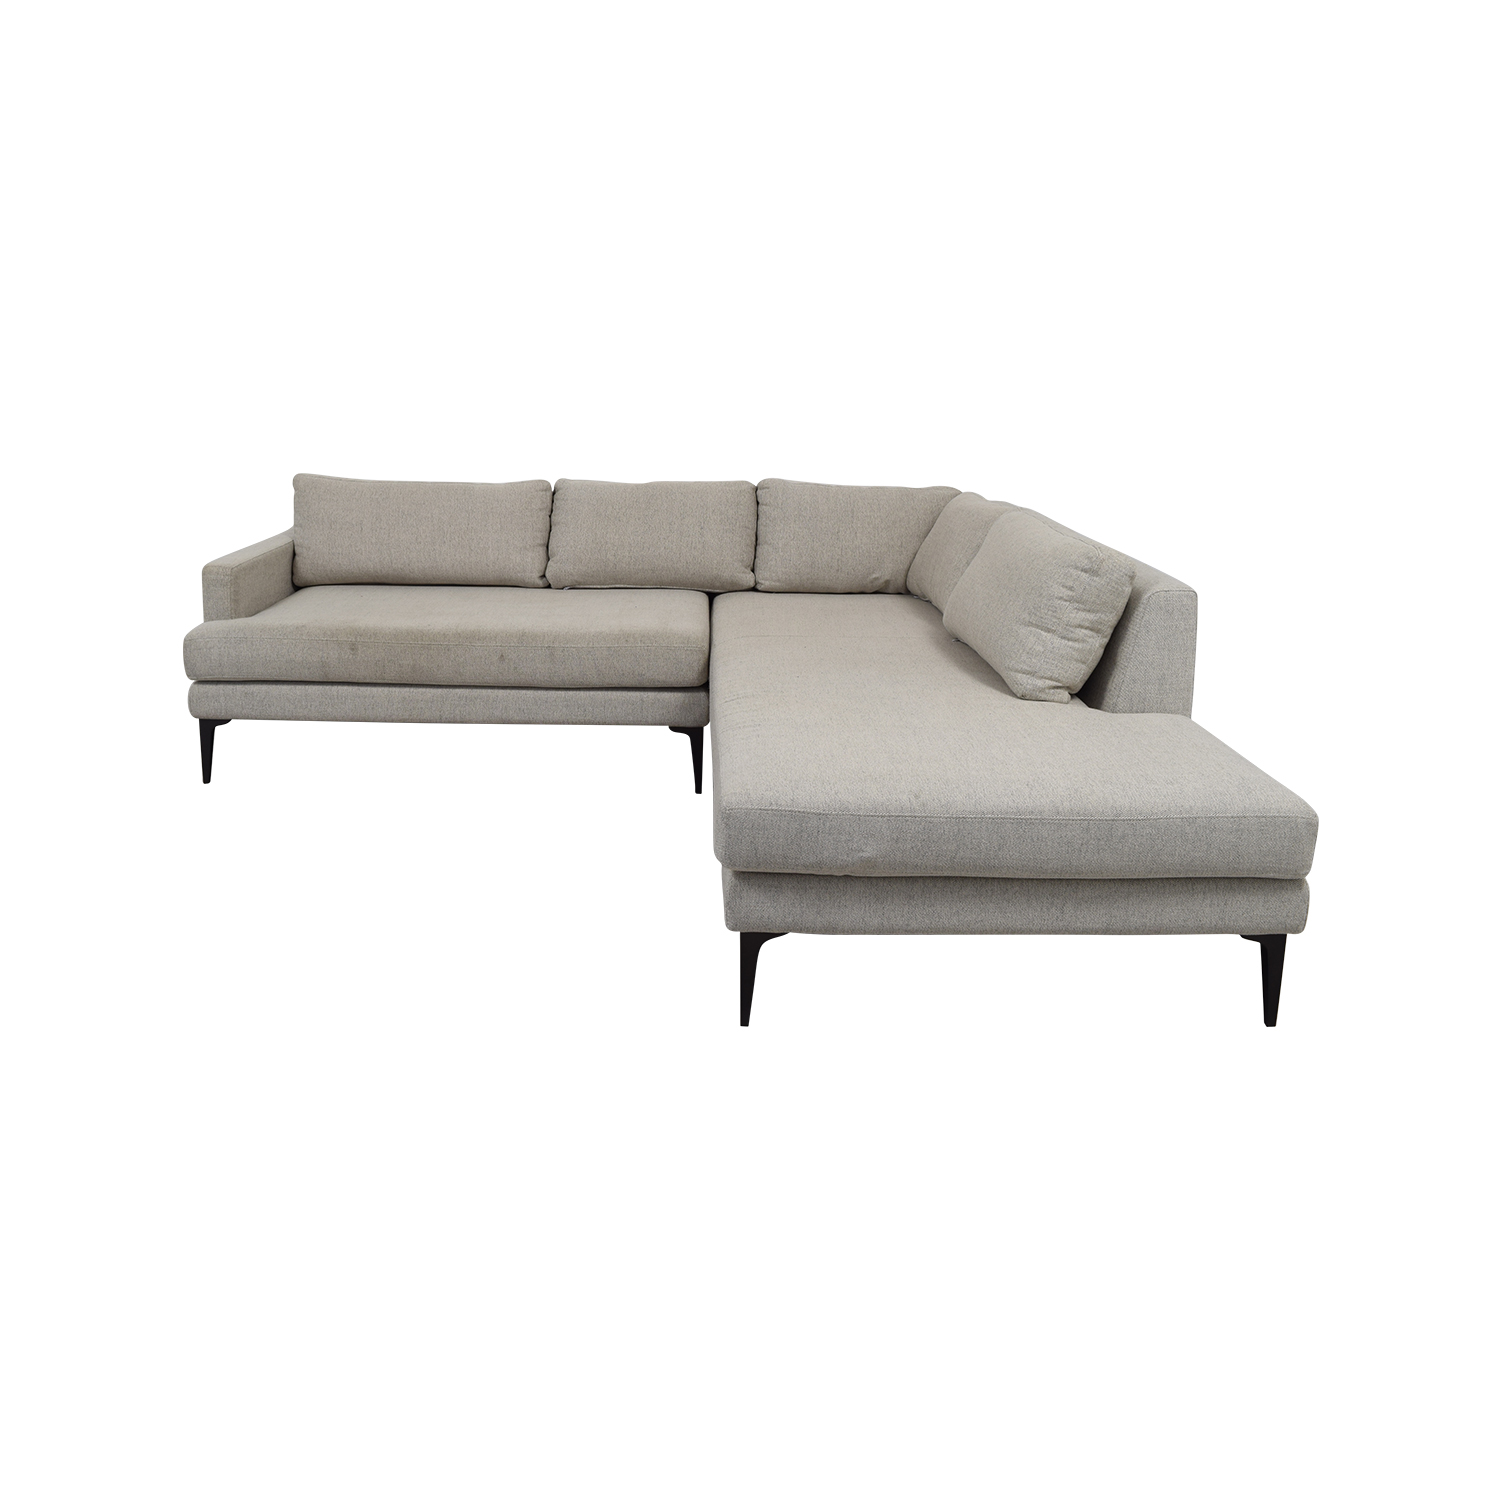 Sensational 56 Off West Elm West Elm Andes Terminal Gray Left Chaise Sectional Sofas Alphanode Cool Chair Designs And Ideas Alphanodeonline